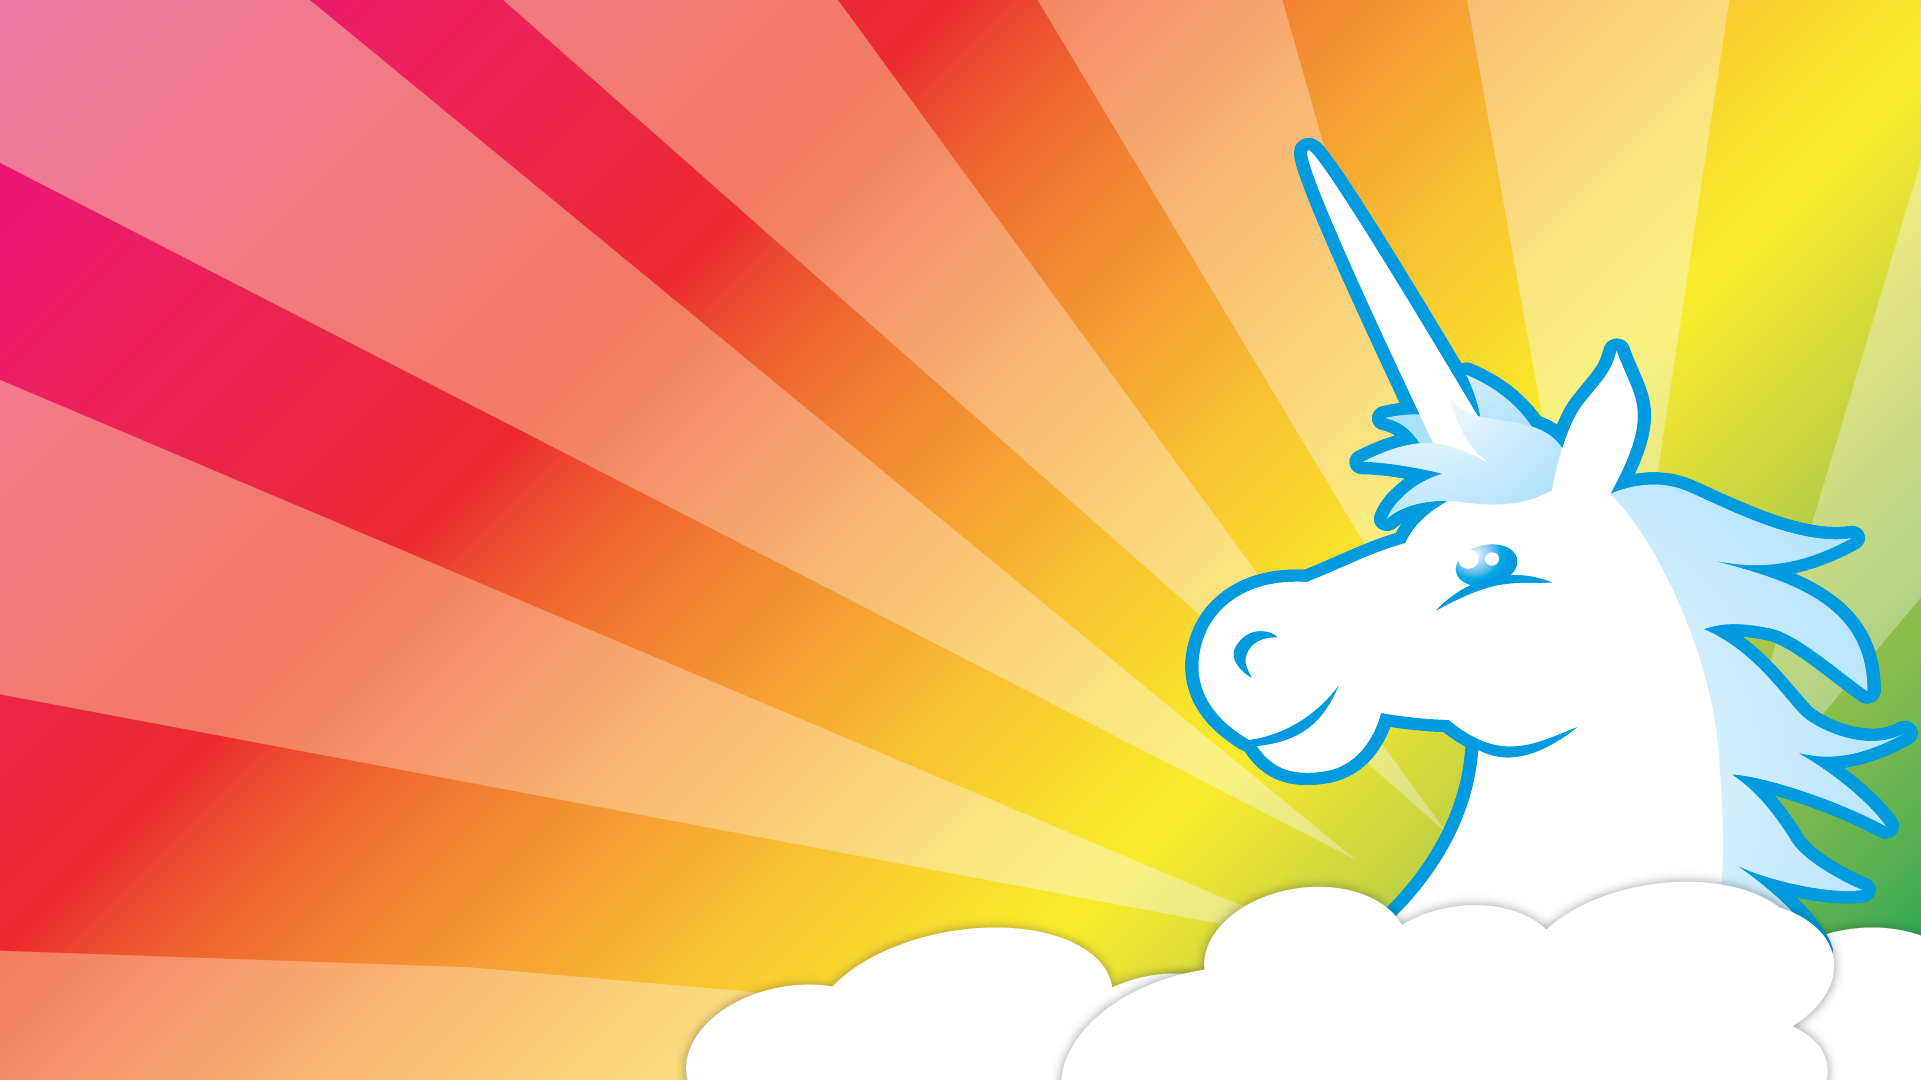 Unicorn Wallpapers Full Hd Is Cool Wallpapers